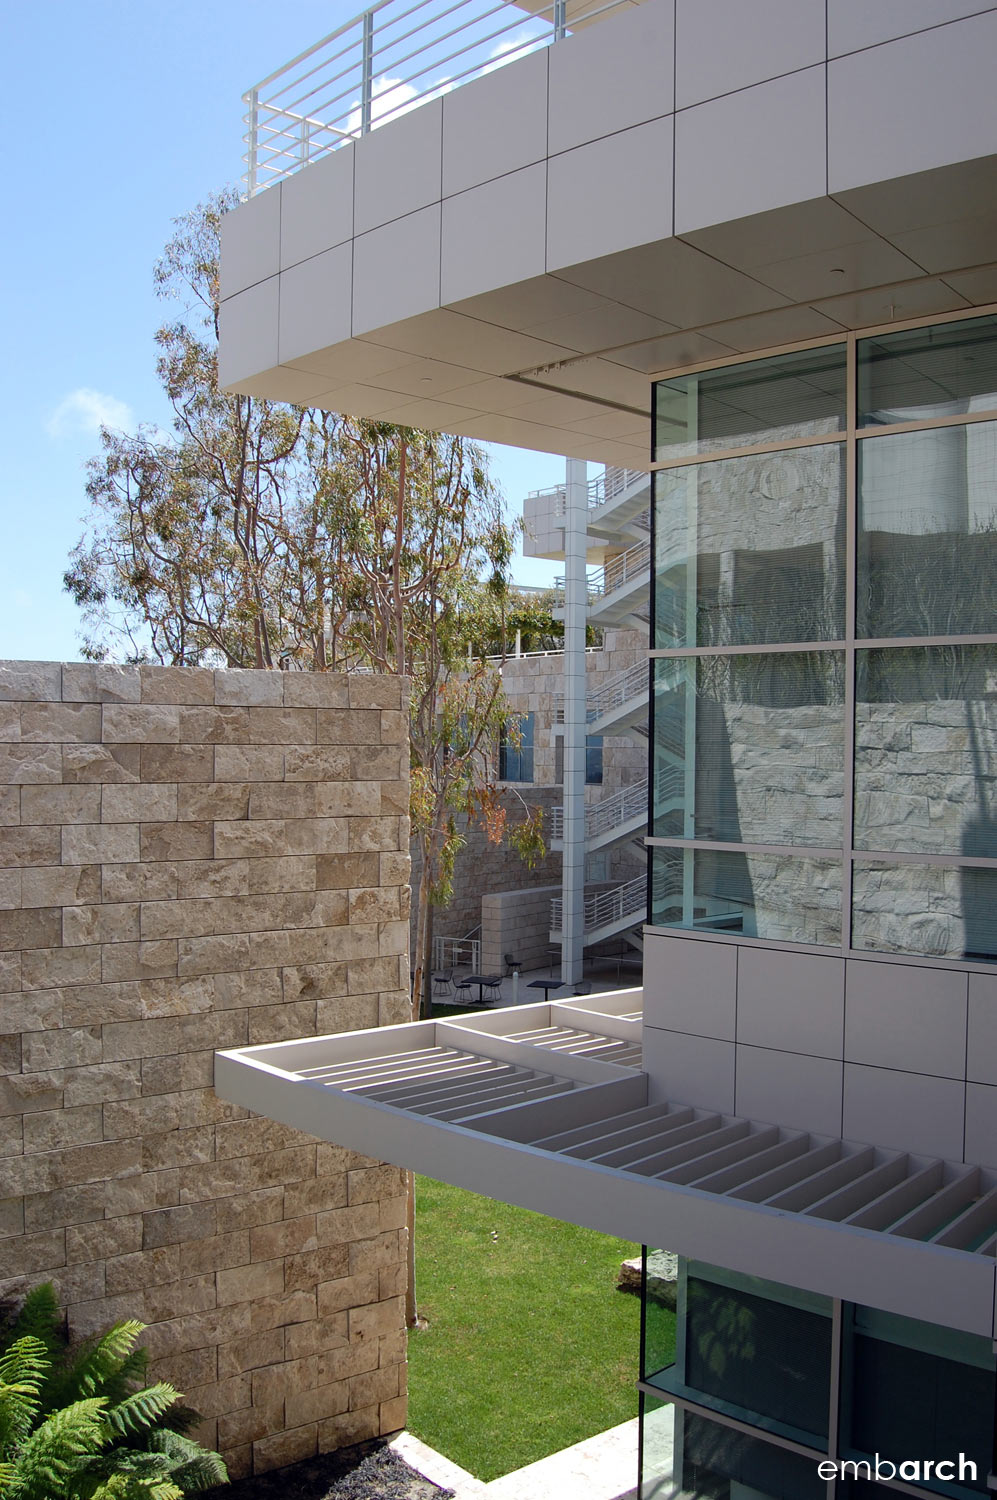 Getty Center - exterior detail